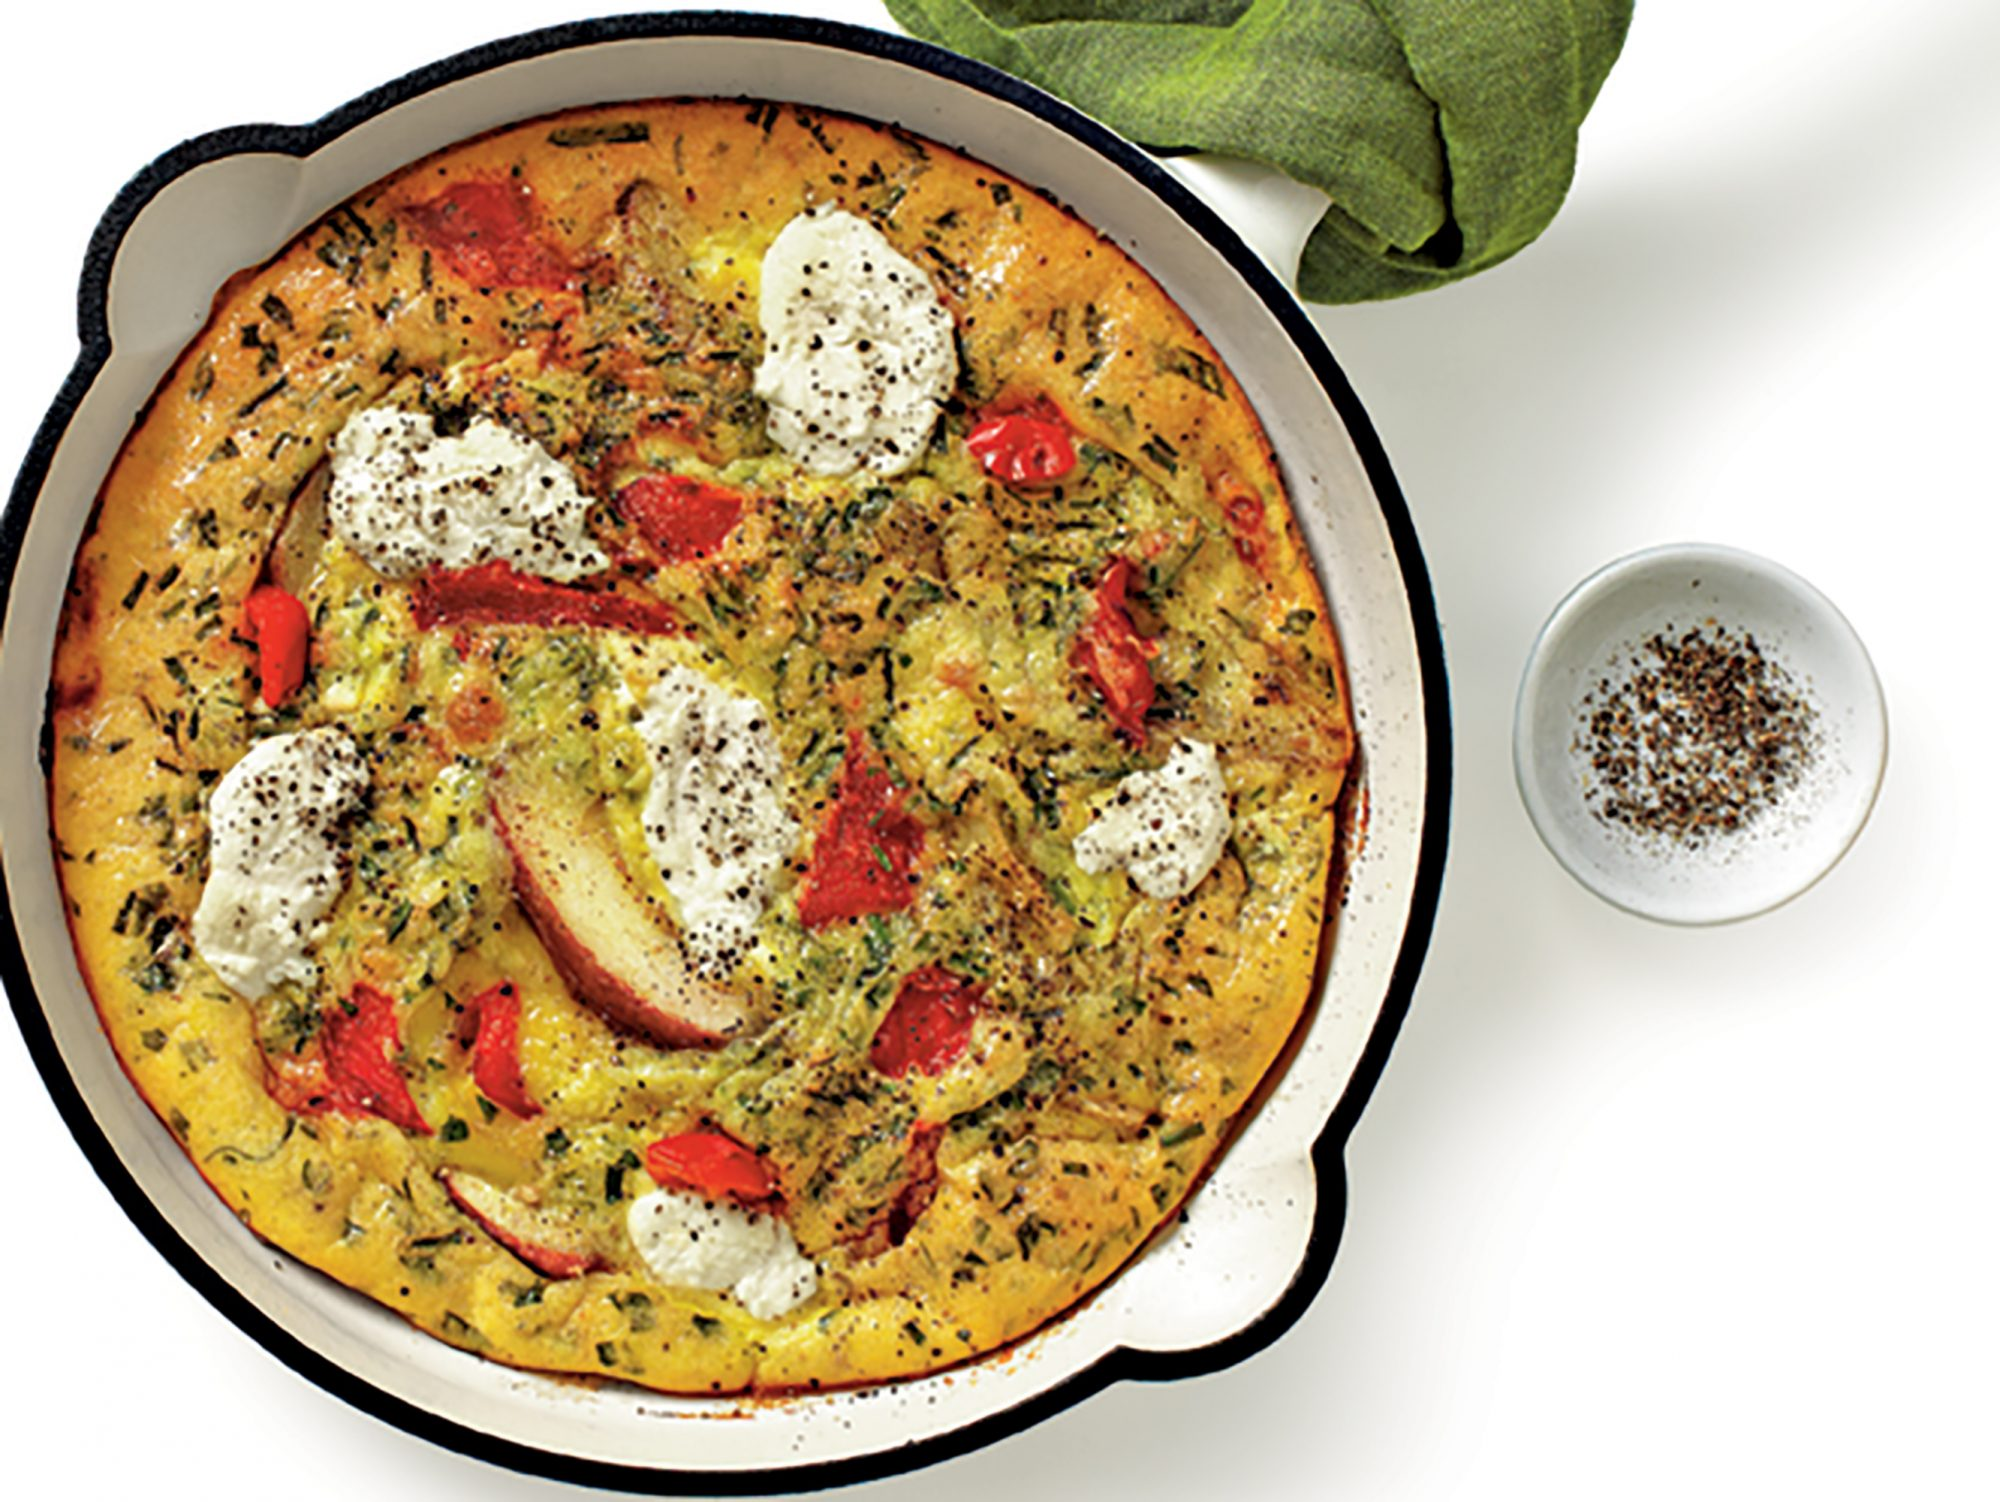 Asparagus, Nettle, and Green Garlic Frittata image